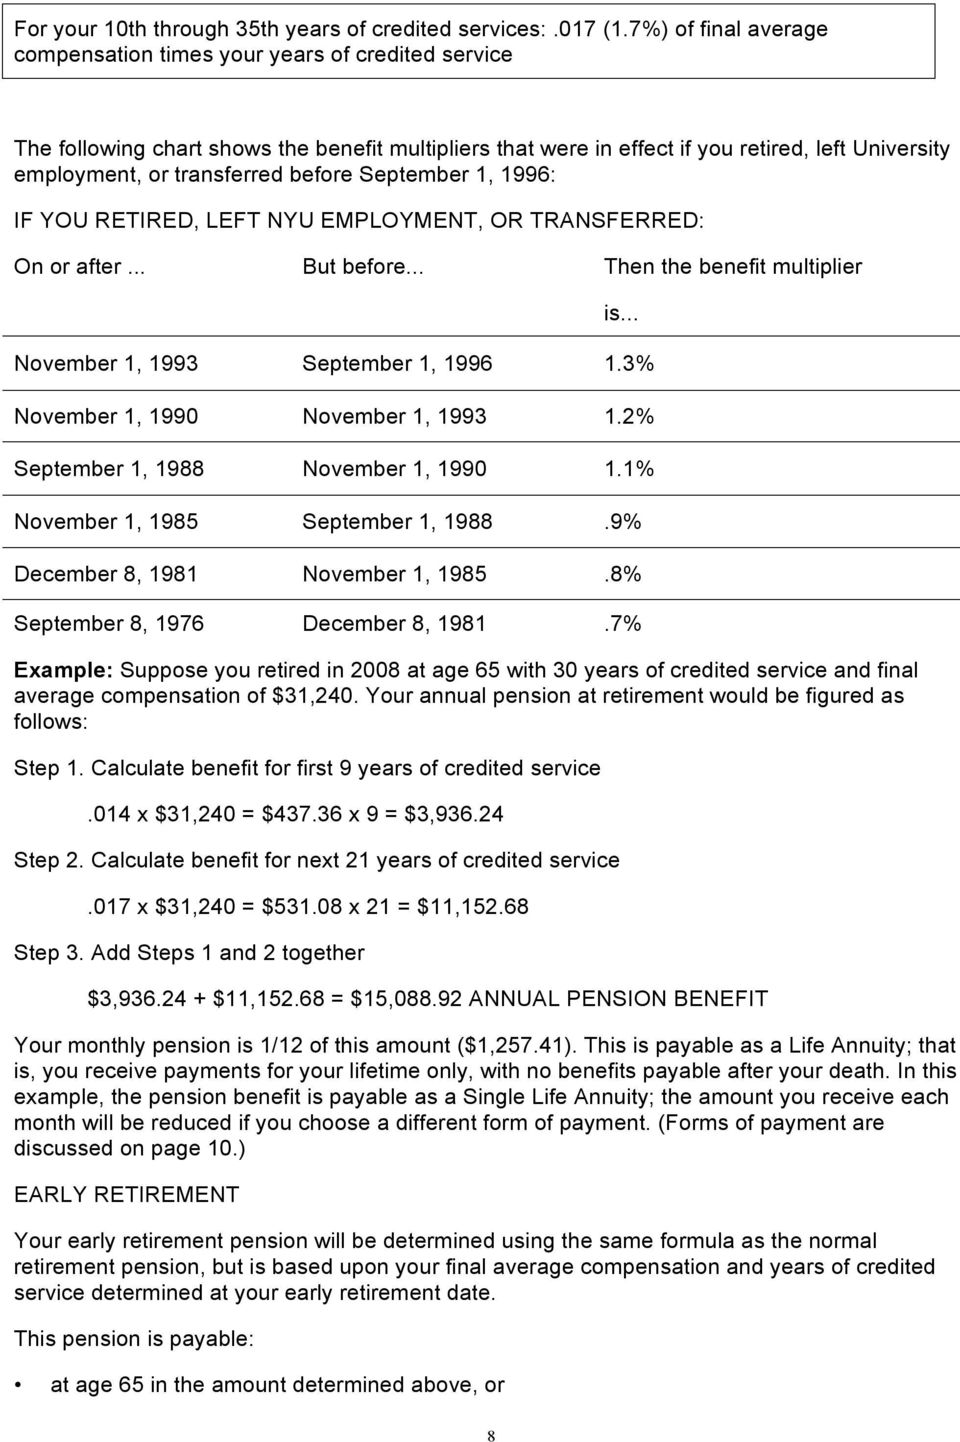 before September 1, 1996: IF YOU RETIRED, LEFT NYU EMPLOYMENT, OR TRANSFERRED: On or after... But before... Then the benefit multiplier is... November 1, 1993 September 1, 1996 1.